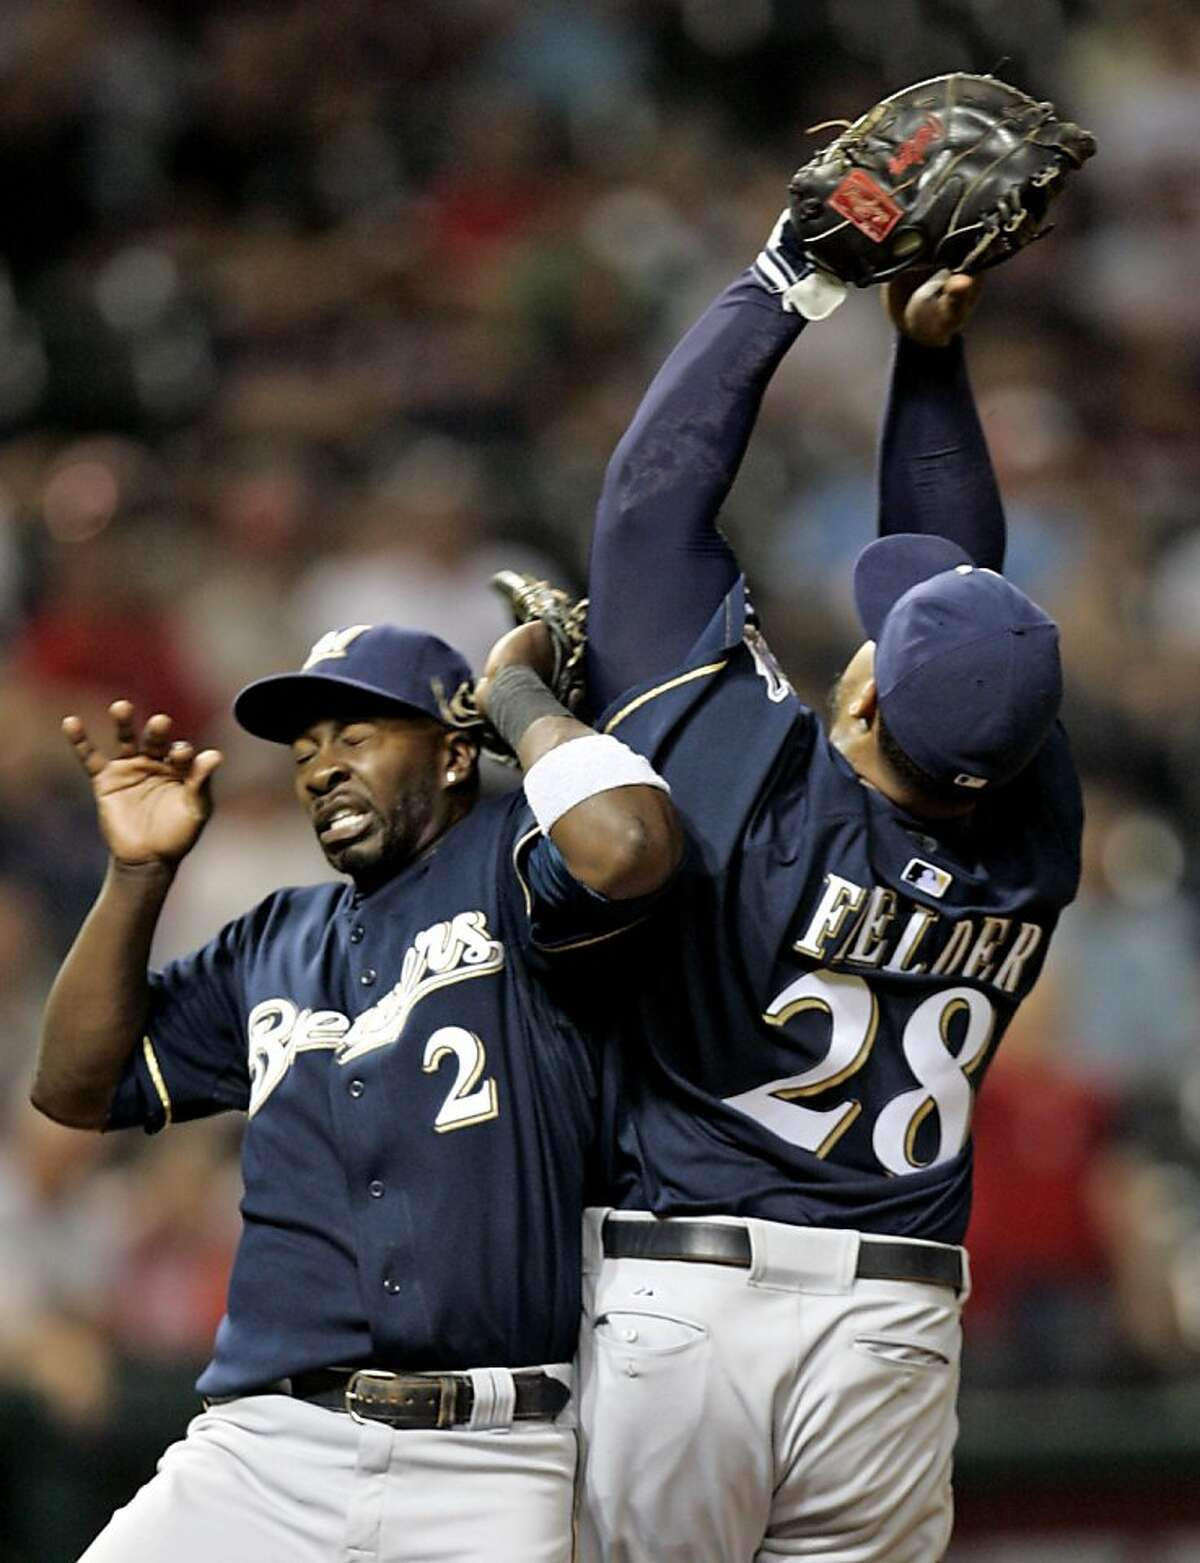 Milwaukee Brewers third baseman Bill Hall (2) and first baseman Prince Fielder (28) collide going after a ball hit by Cleveland Indians' Kelly Shoppach in the eighth inning of a baseball game Wednesday, June 17, 2009, in Cleveland. Fielder caught the ball for the out.